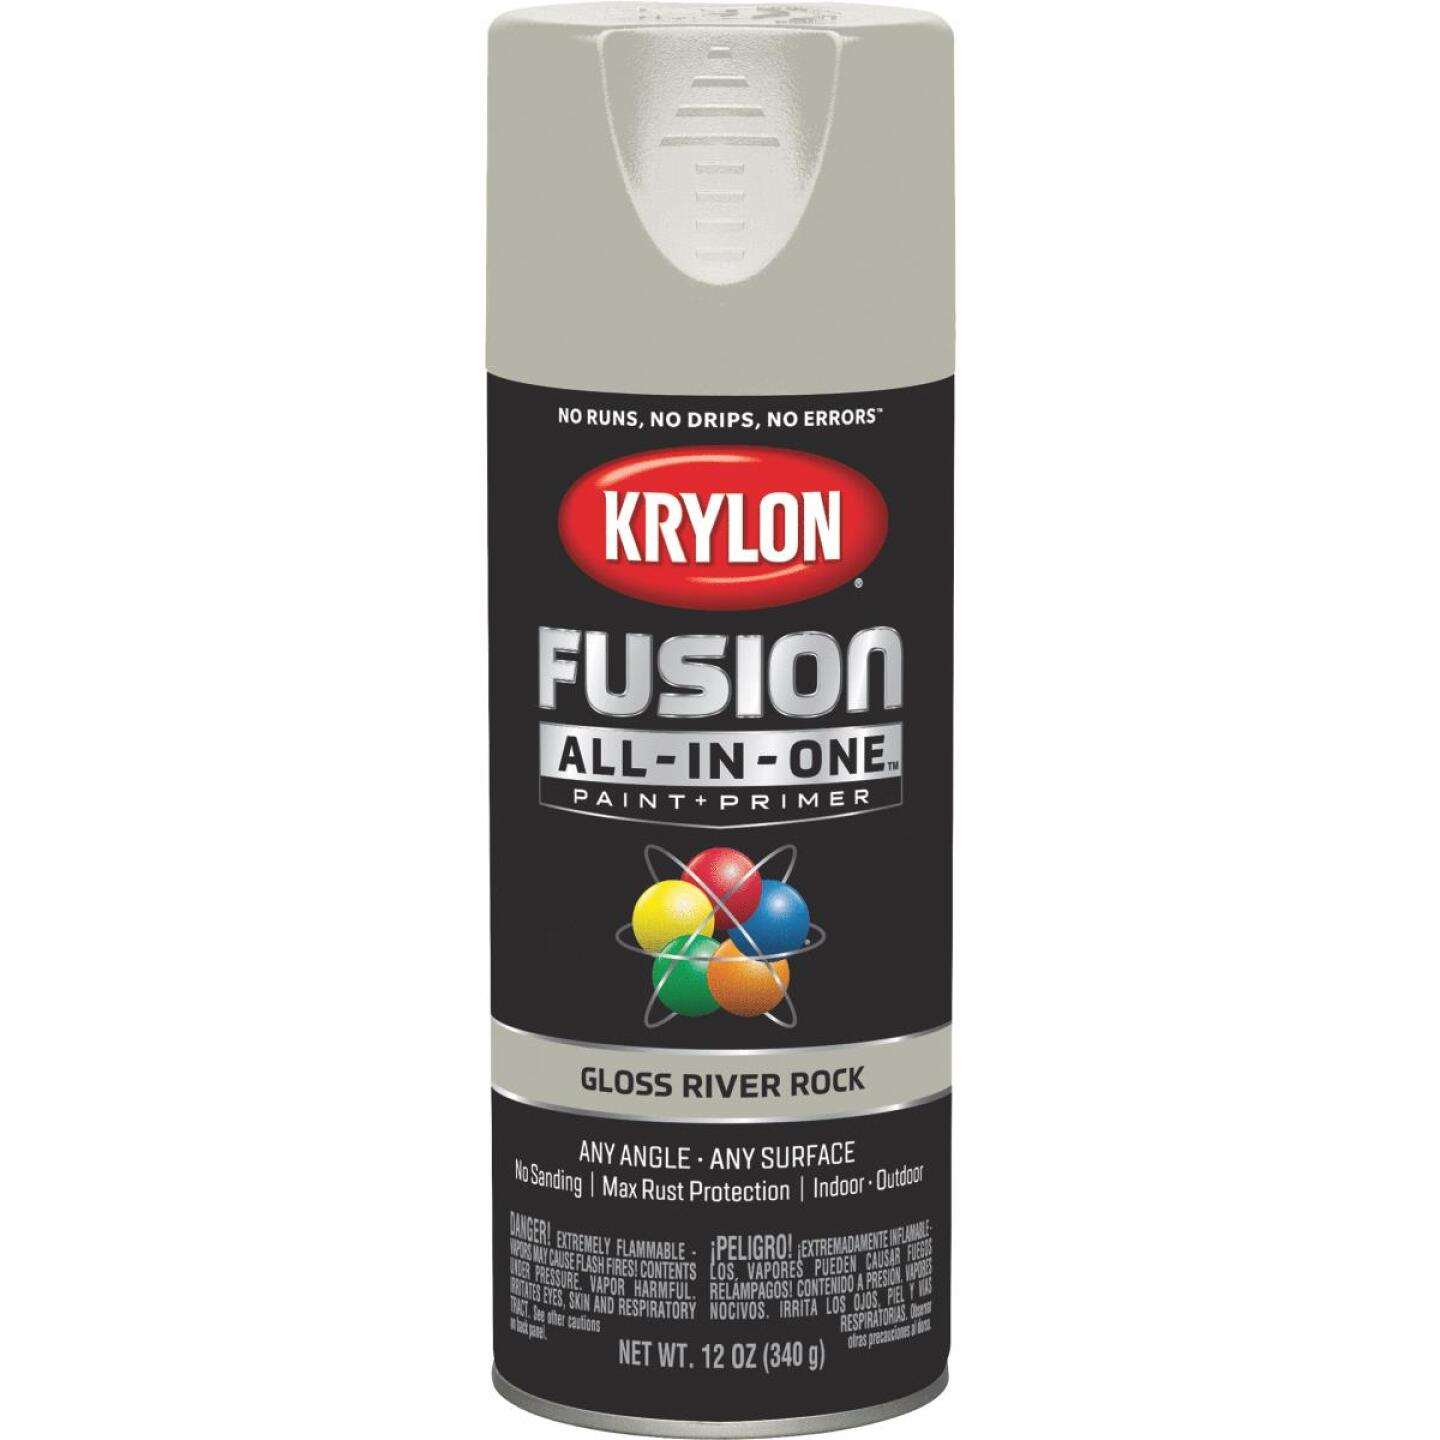 Krylon Fusion All-In-One Gloss Spray Paint & Primer, River Rock Image 1